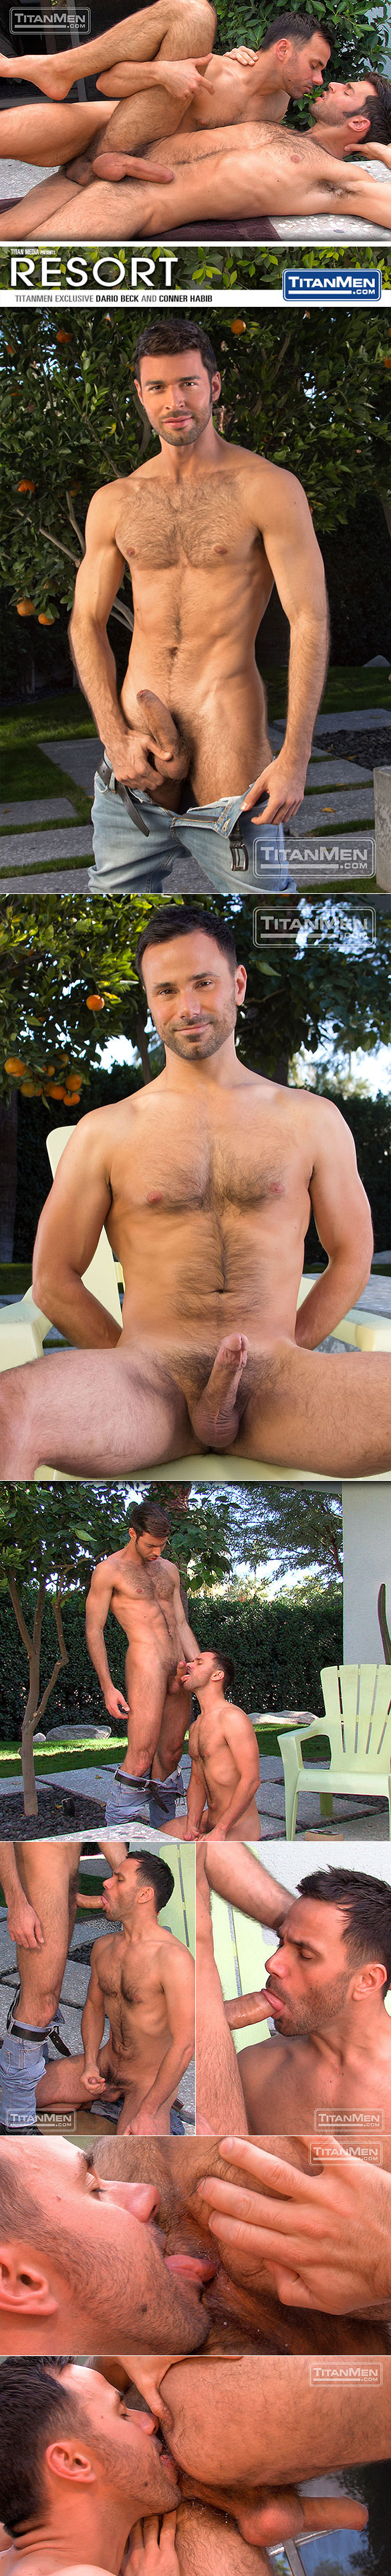 "Titan Men: Dario Beck gets fucked by Conner Habib in ""Resort"""